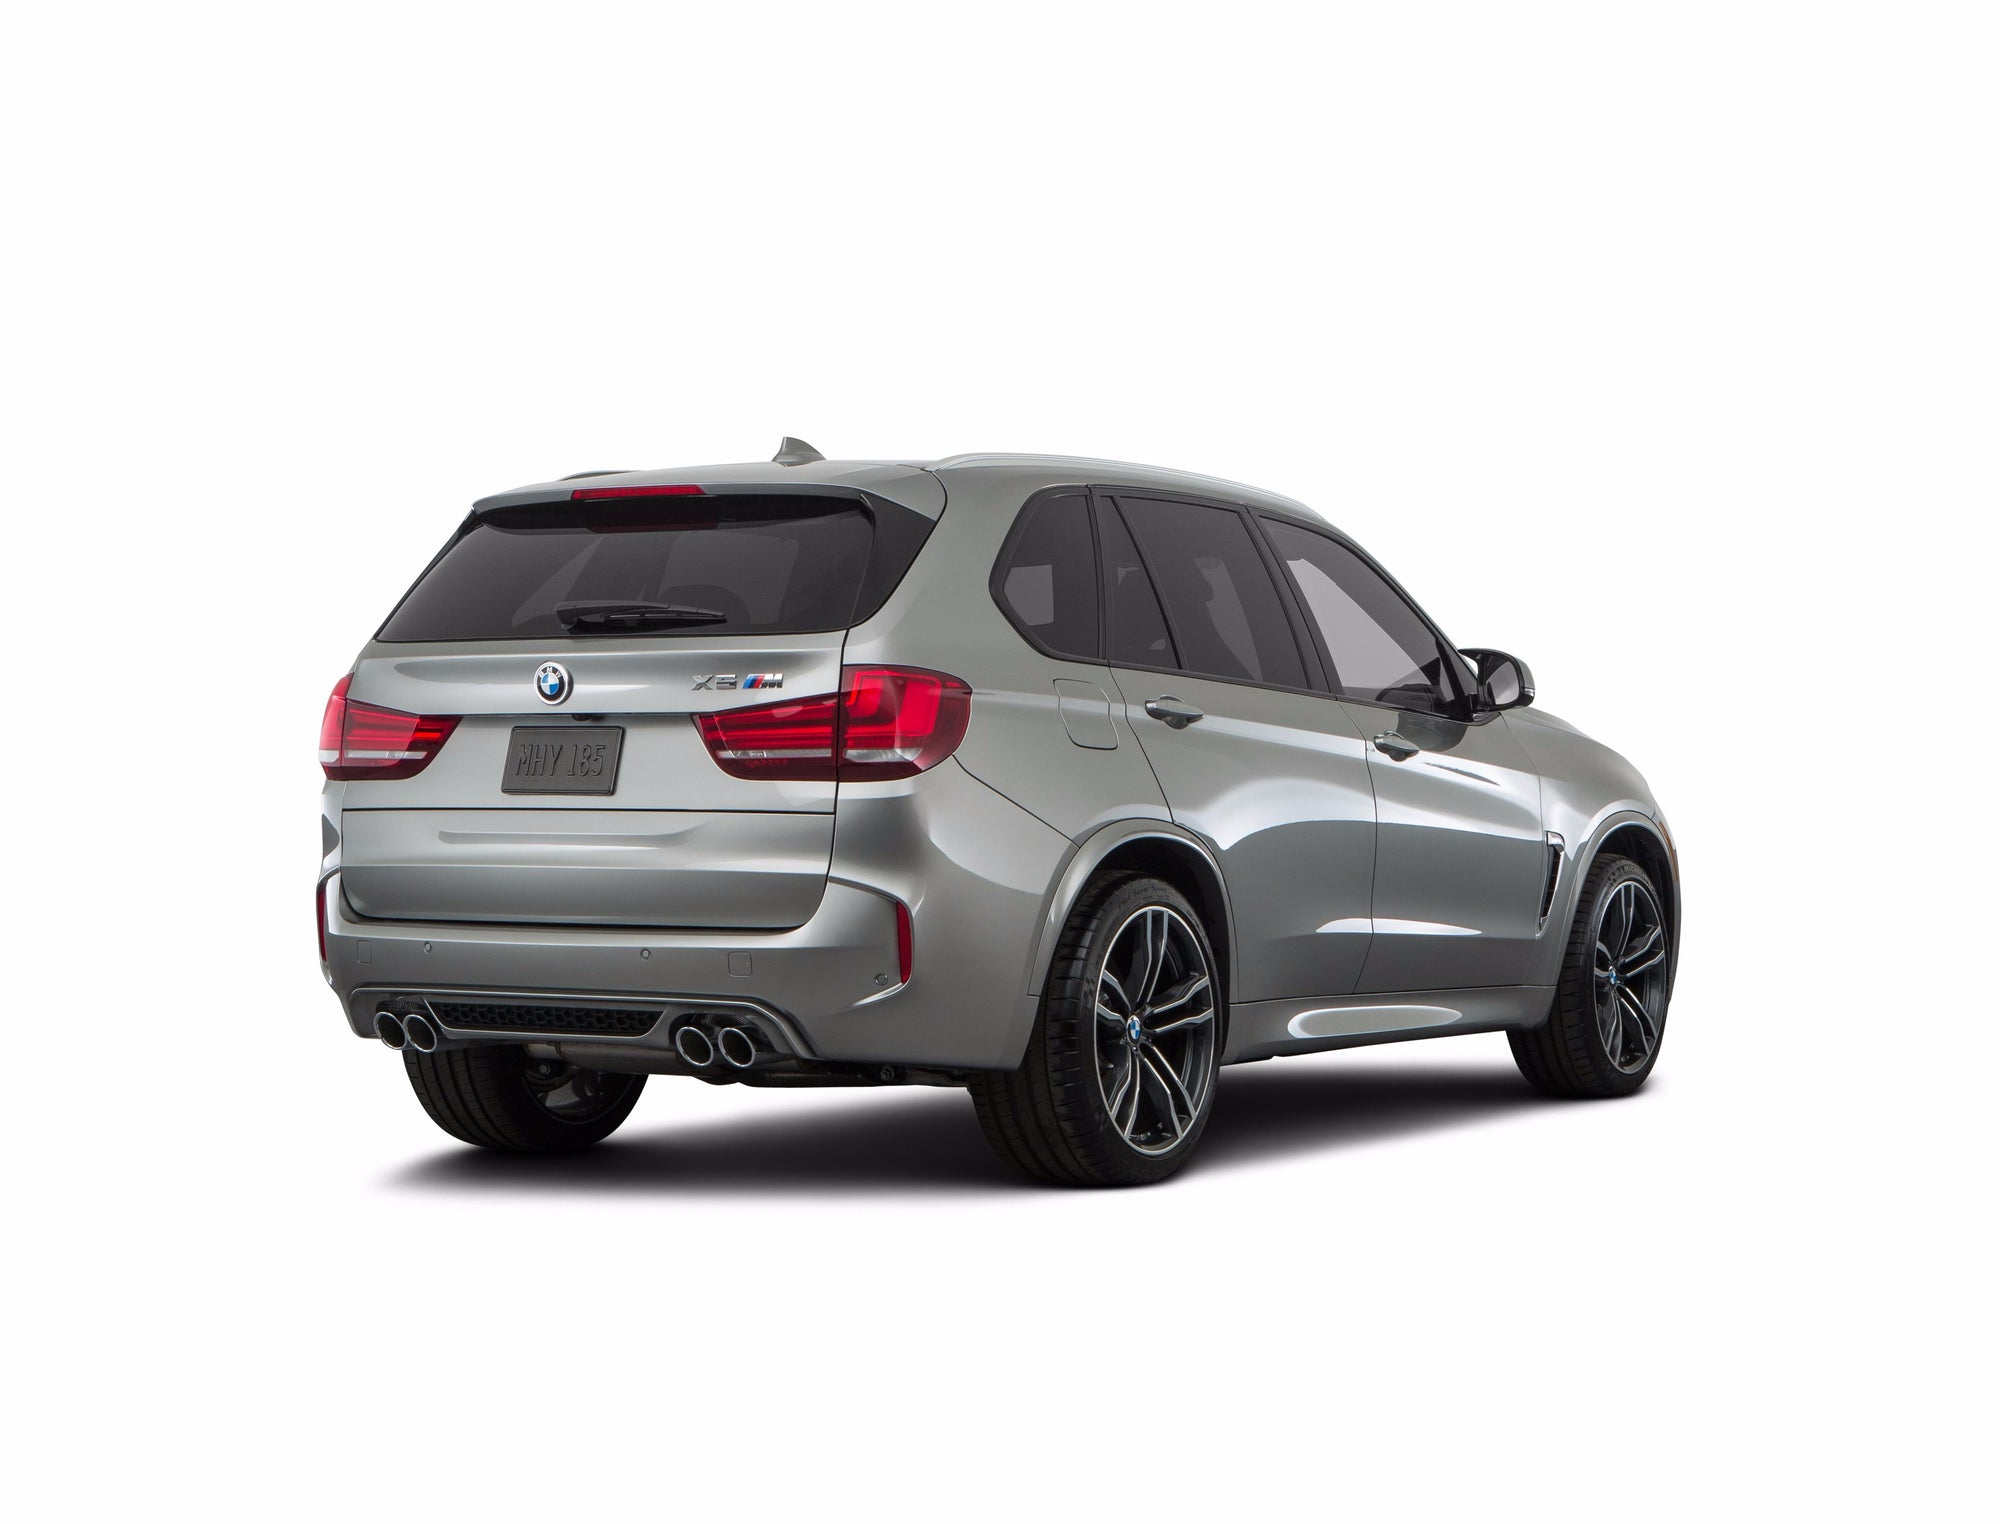 2017 Subaru Outback Towing Capacity >> BMW X5 hitch- MADE to be HIDDEN. Increase tow capacity!